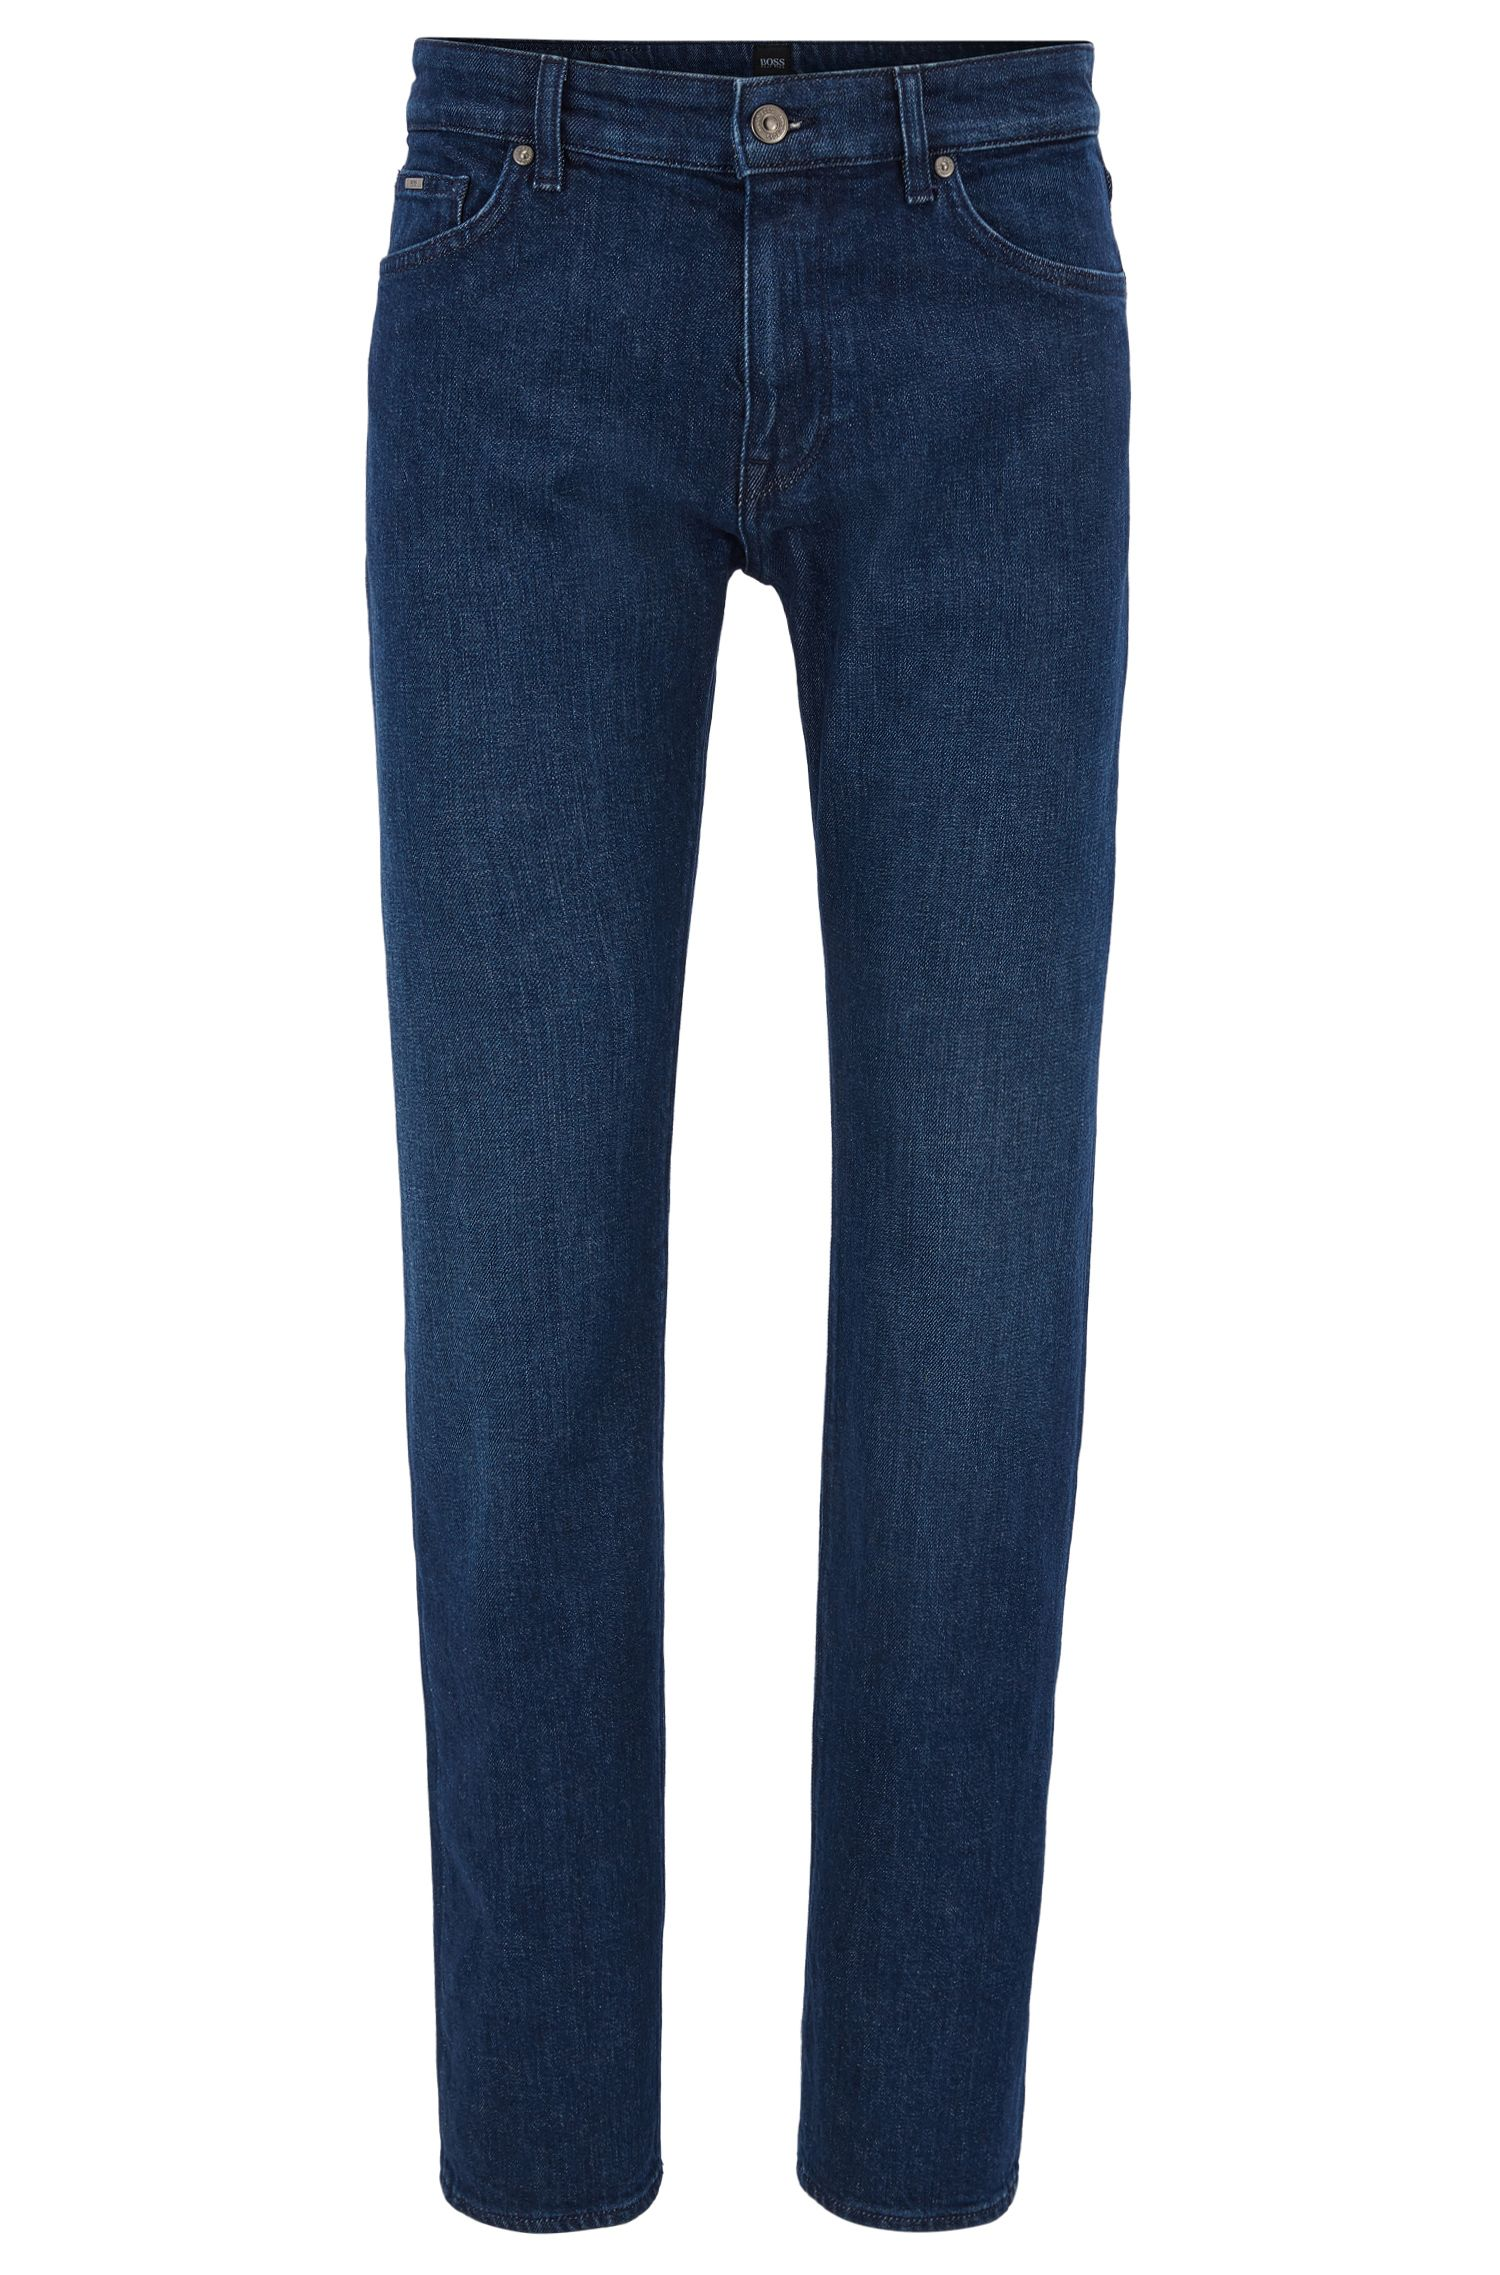 Jeans regular fit in denim elasticizzato blu scuro realizzato in Italia